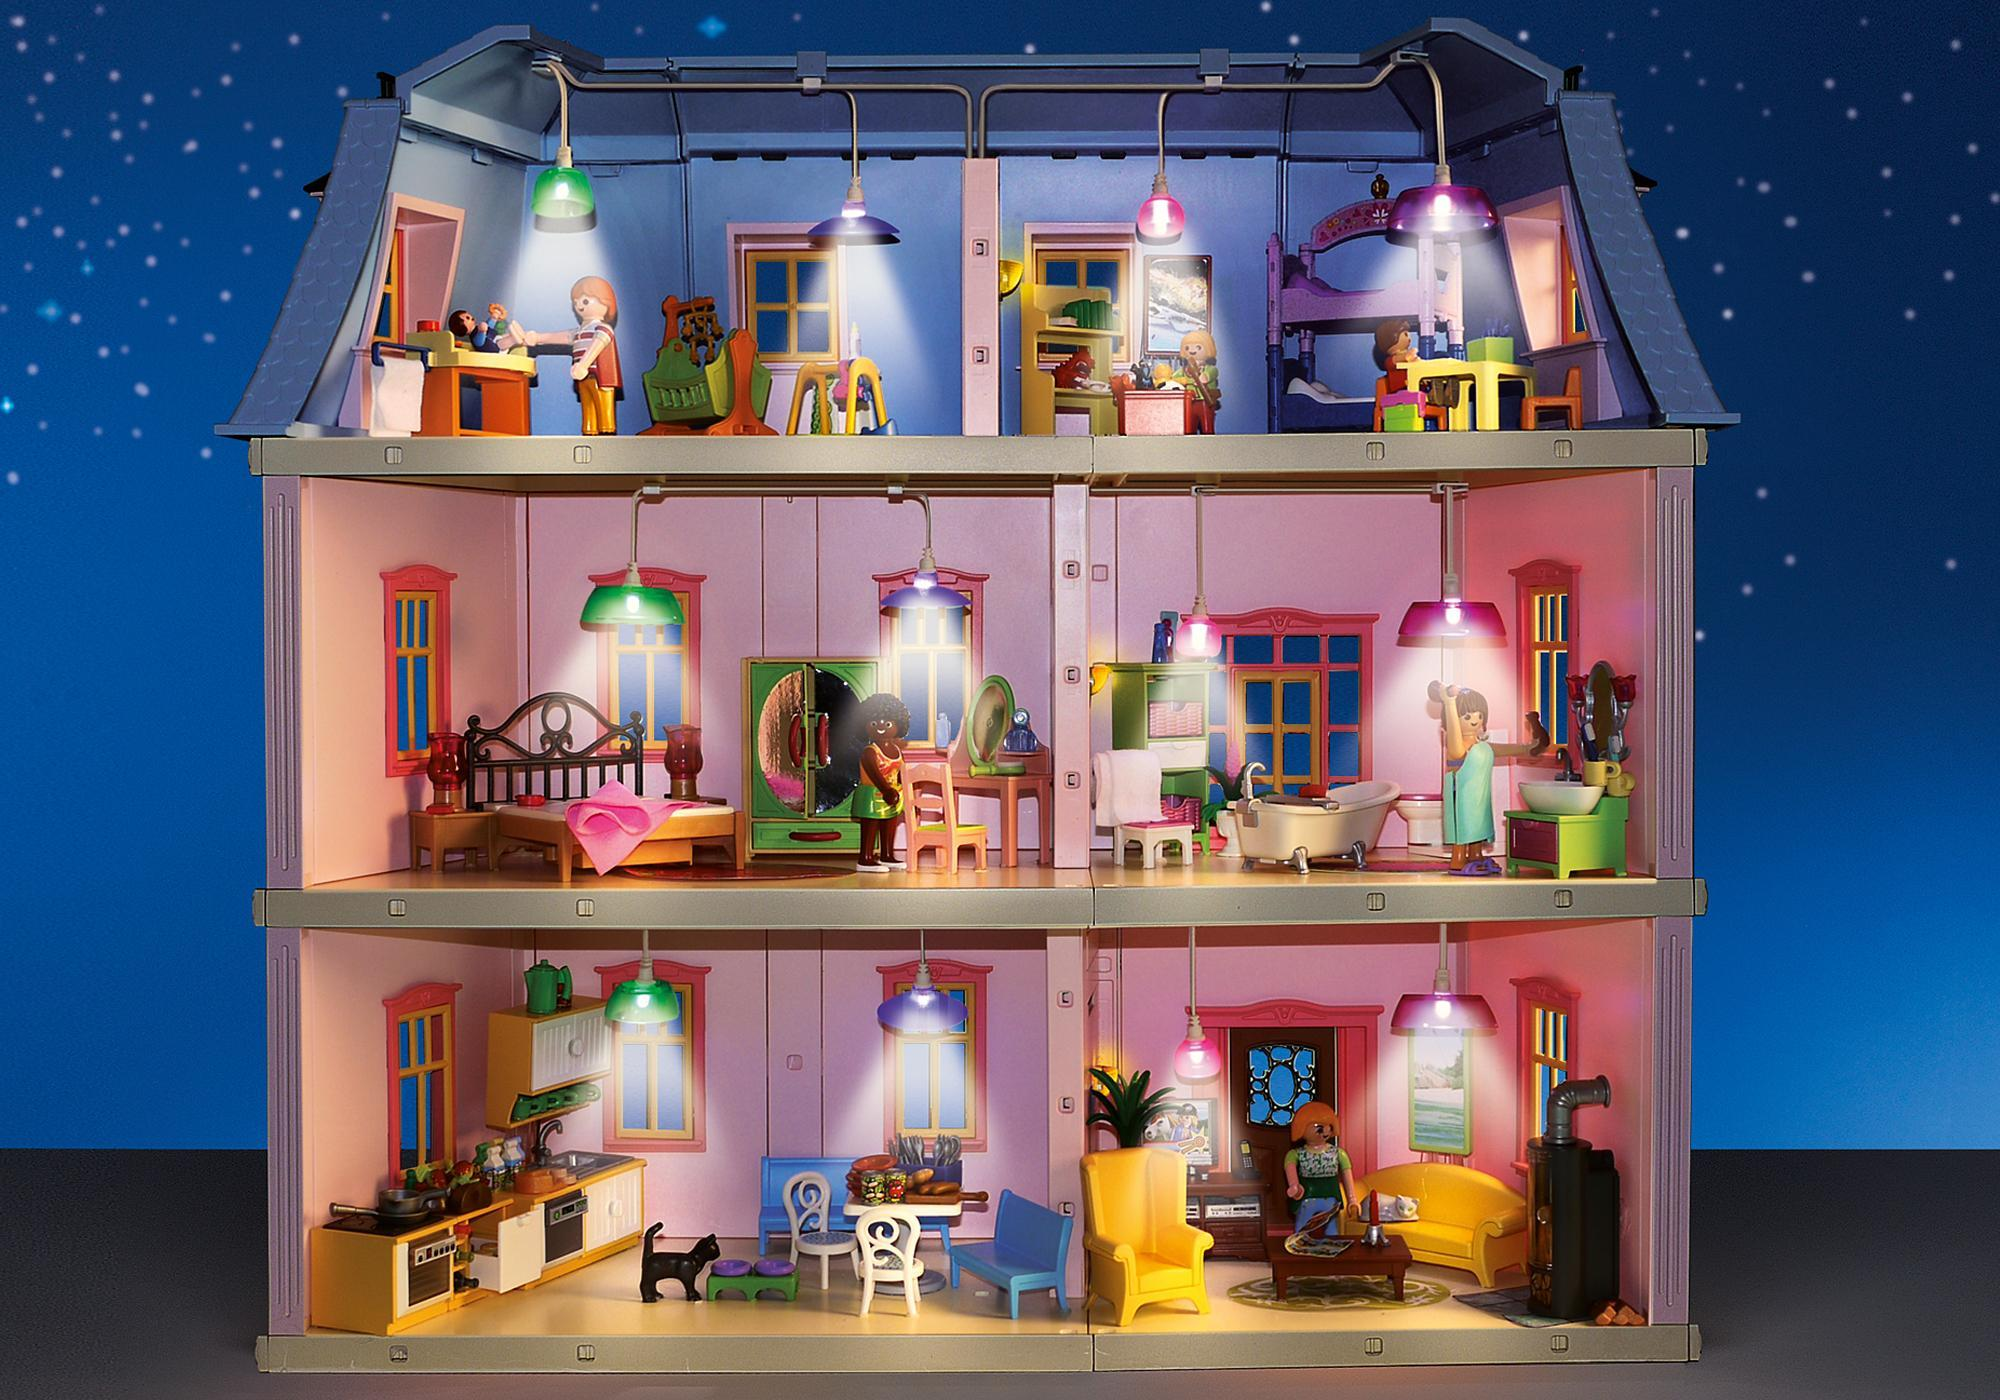 Dollhouse Playmobil Light Set For Deluxe Dollhouse 5303 6456 Playmobil Canada